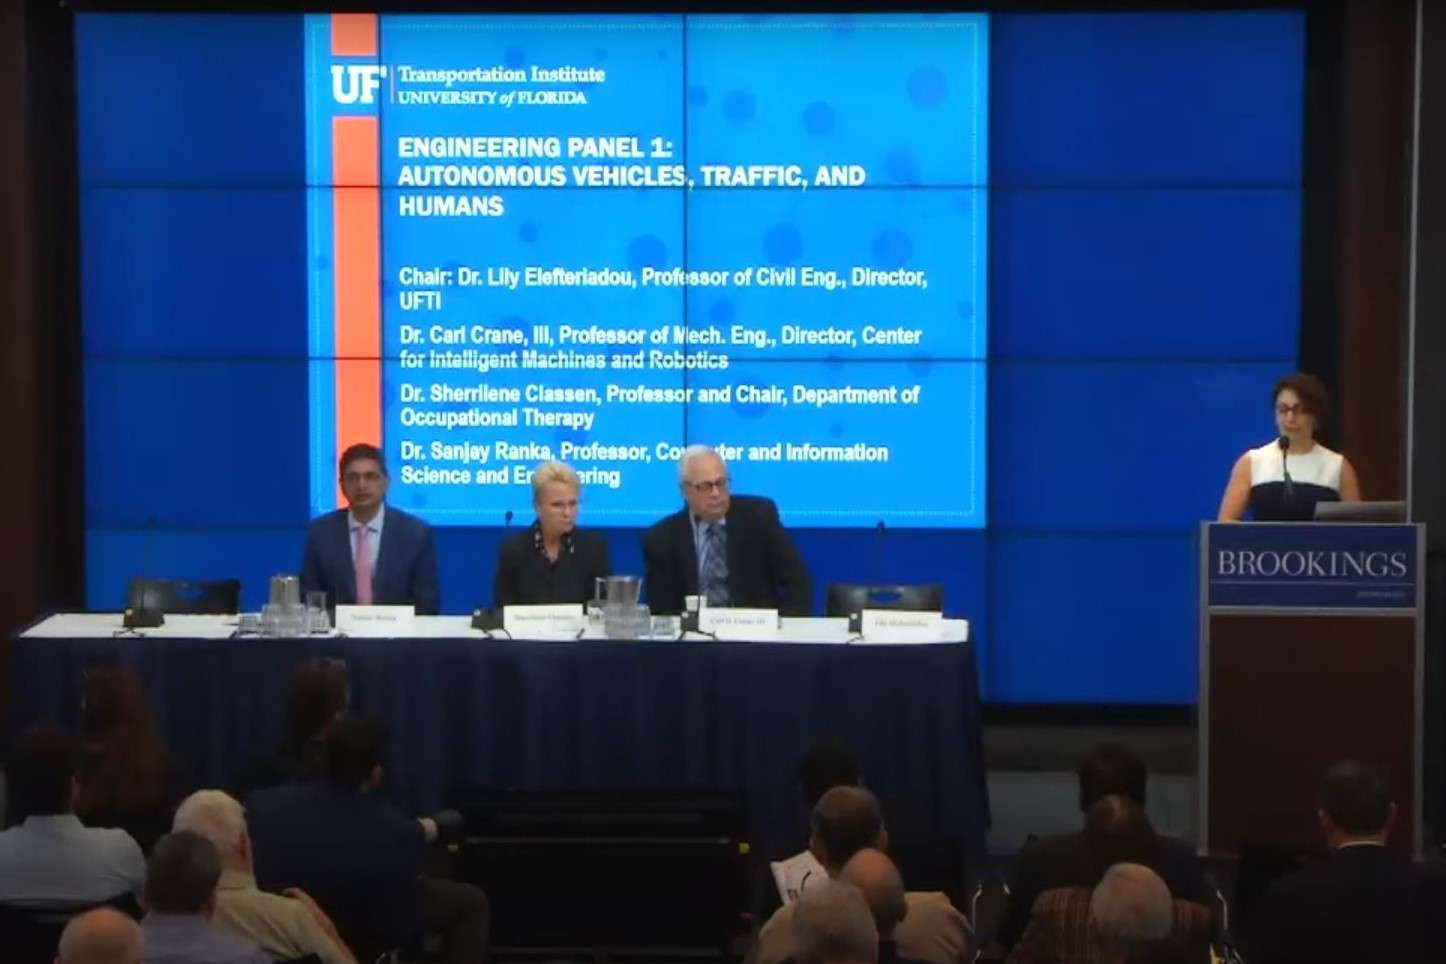 Dr. Sherrilene Classen was a panelist, along with other engineers, researchers, economists, and government officials, to provide a realistic outlook on the current state of driverless cars.